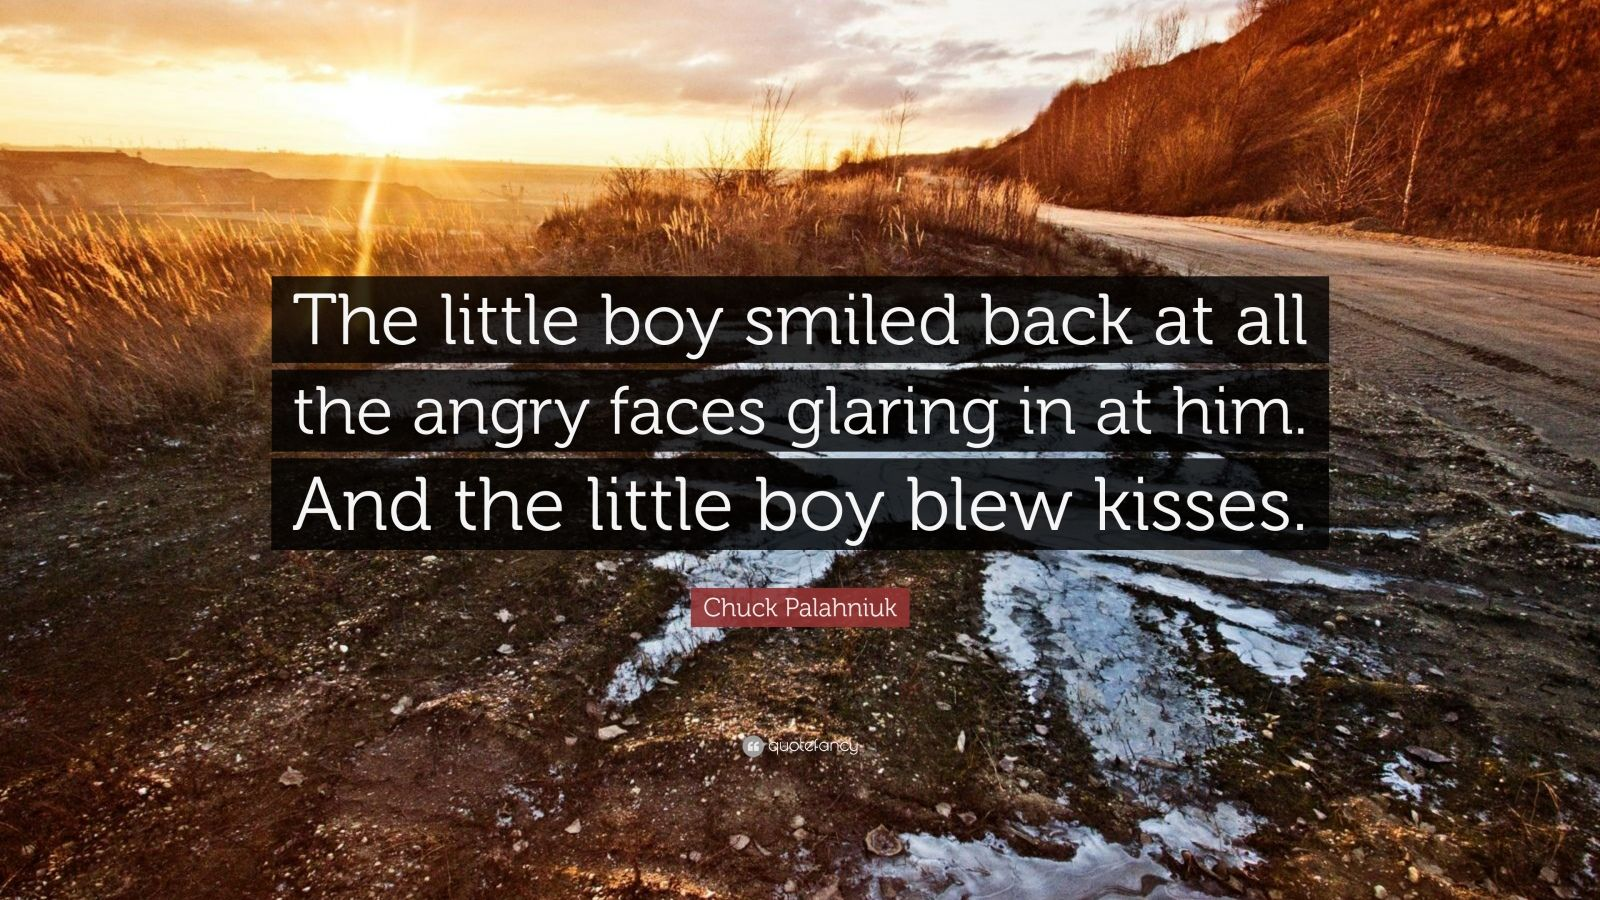 """Chuck Palahniuk Quote: """"The little boy smiled back at all the angry faces glaring in at him. And the little boy blew kisses."""""""